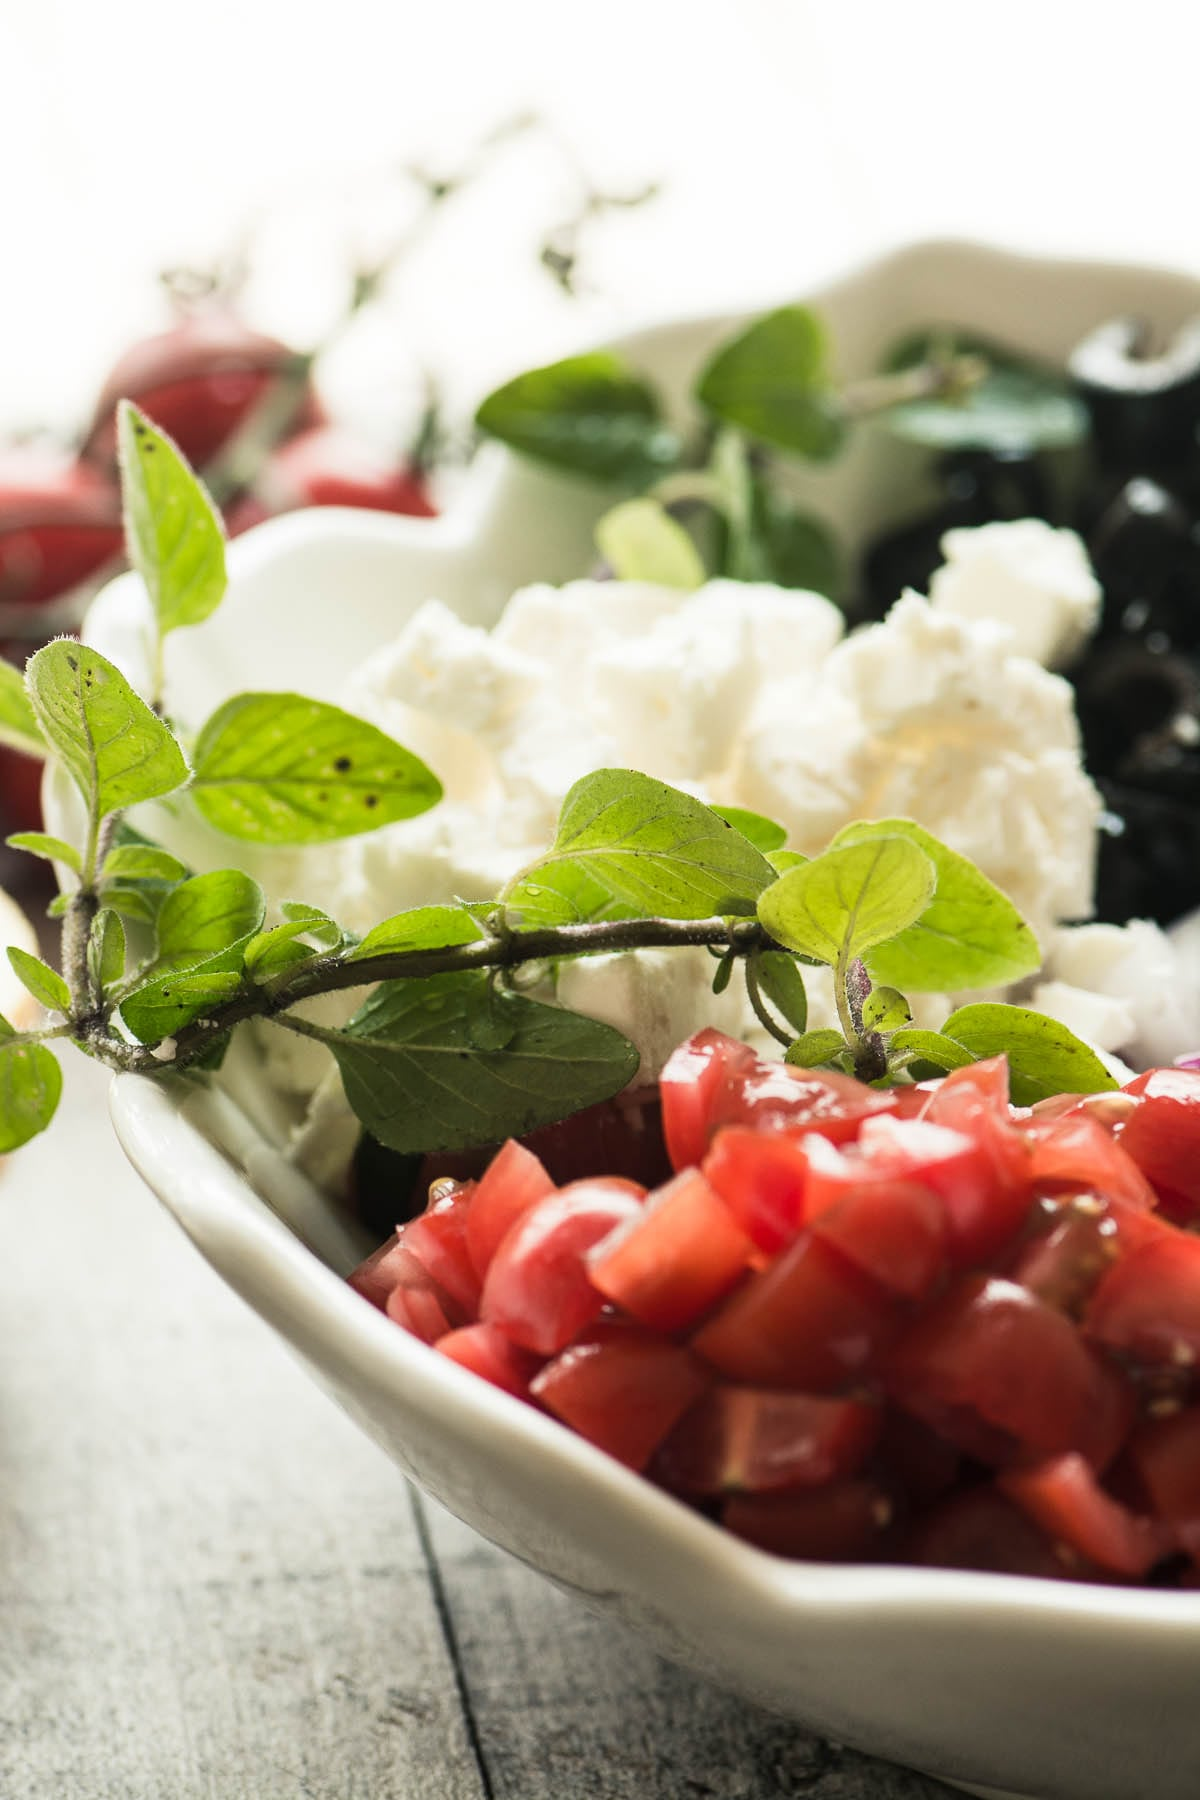 ingredients for chopped Greek salad arranged in a bowl